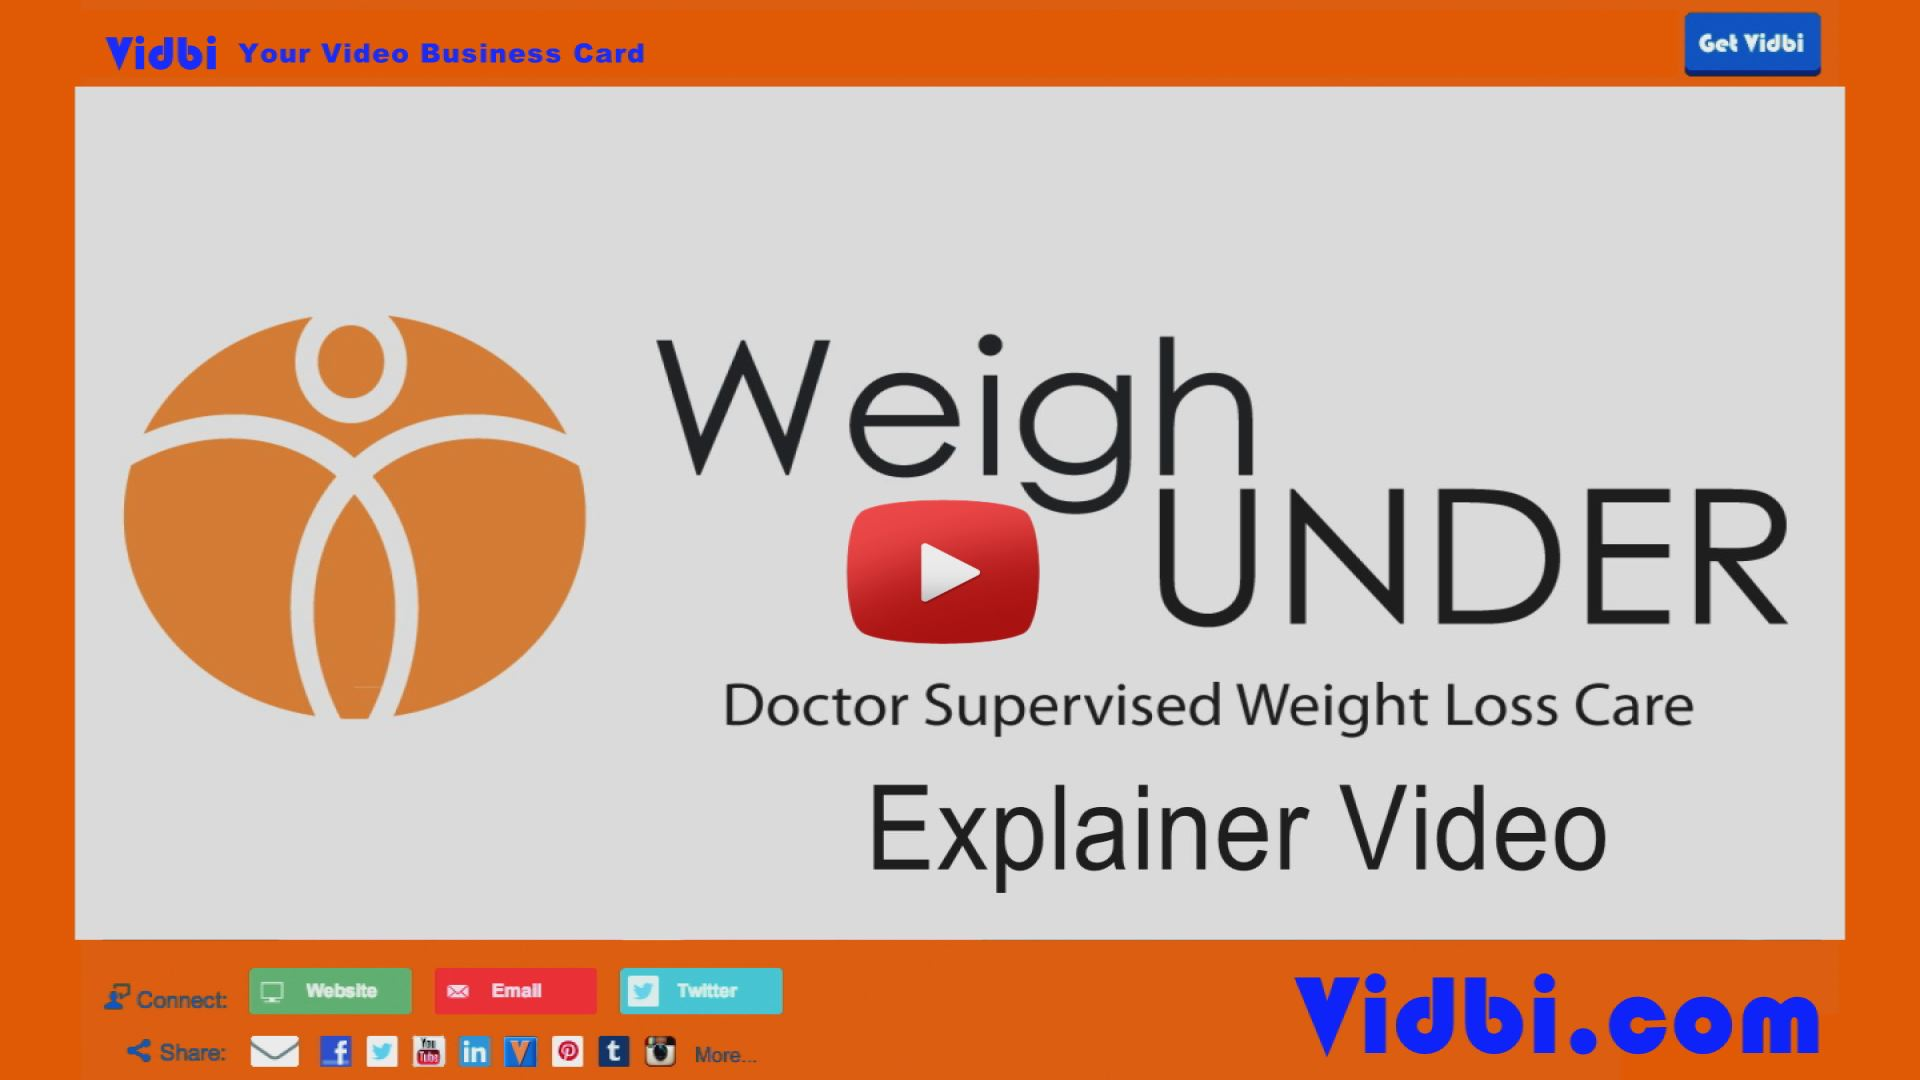 WeighUnder Explainer Video Vidbi